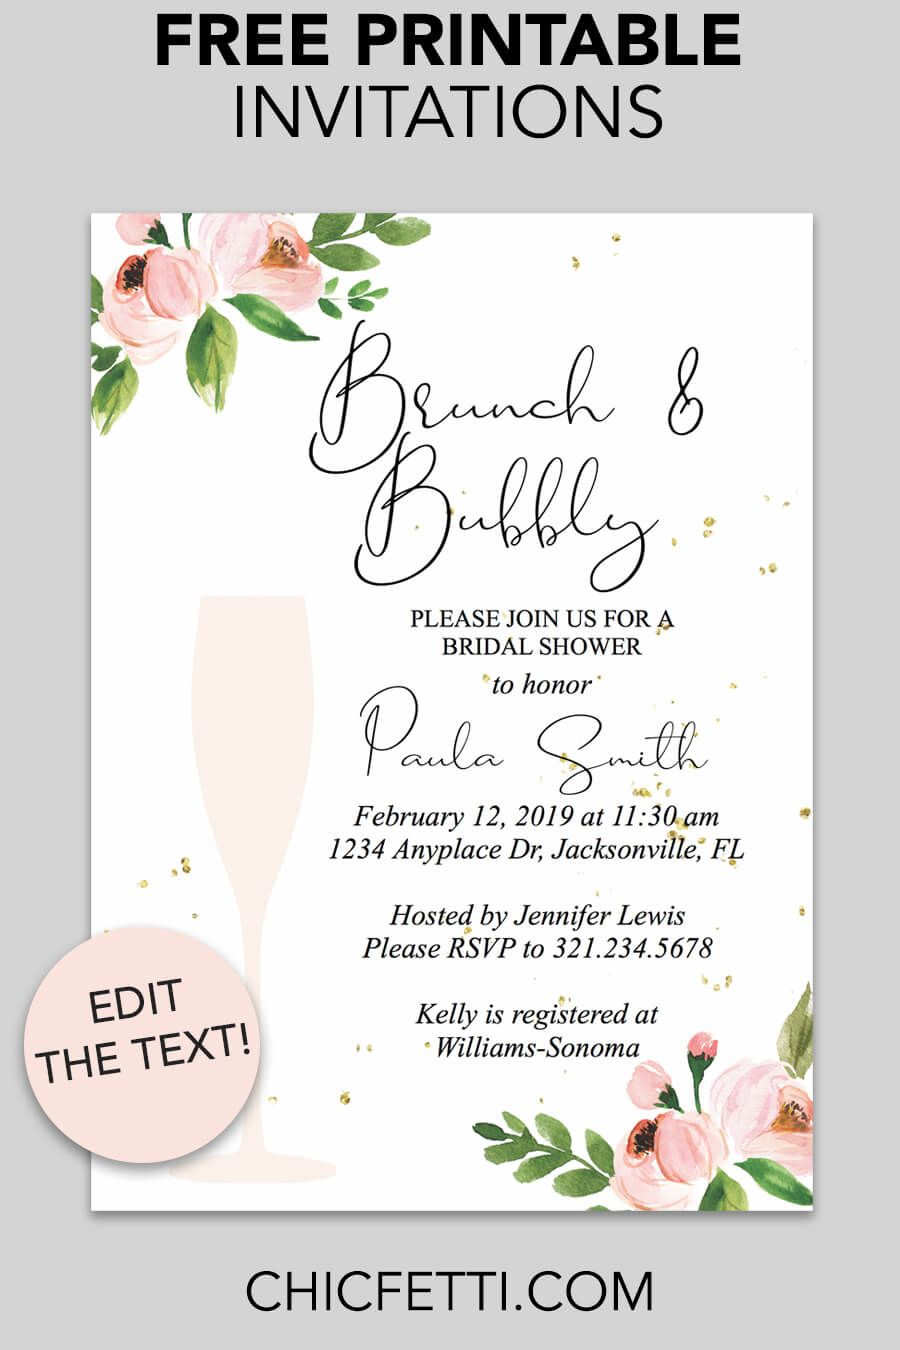 photo about Free Printable Bridal Shower Invitation Templates known as Pin upon Invites - Absolutely free Printable Invitation Templates